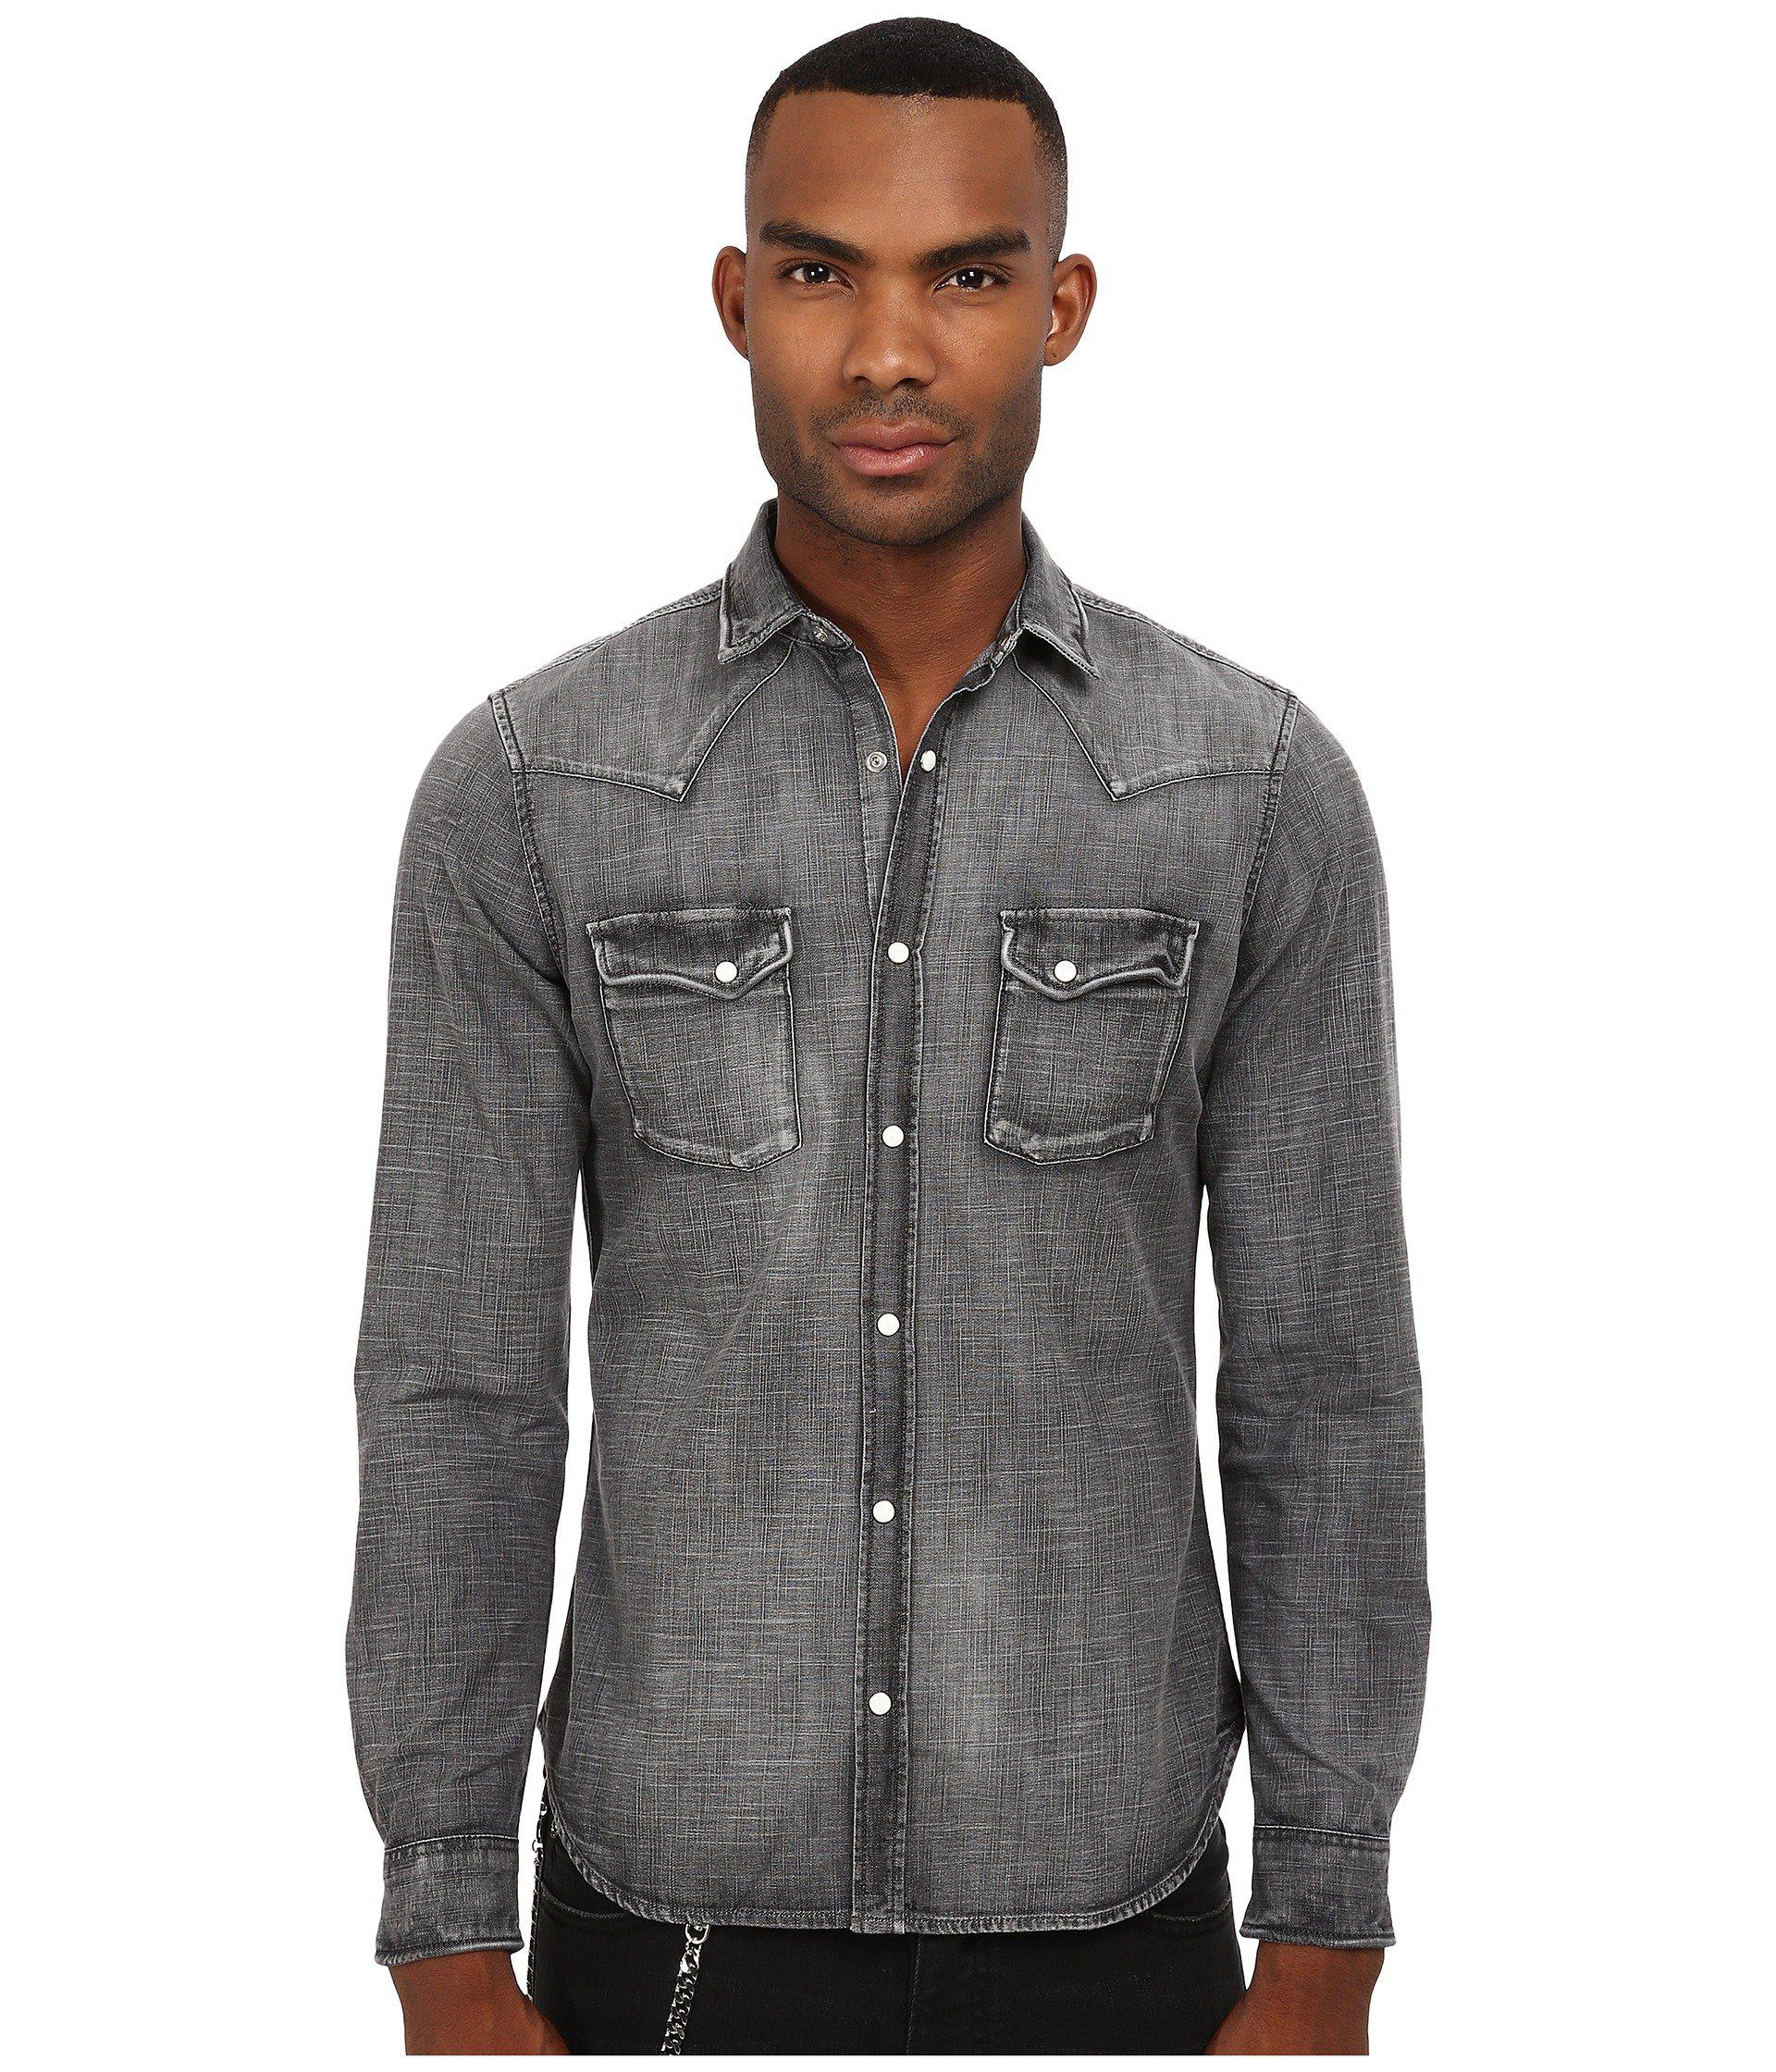 f1bea4a676f Lyst - The Kooples Washed Black Denim Shirt in Blue for Men